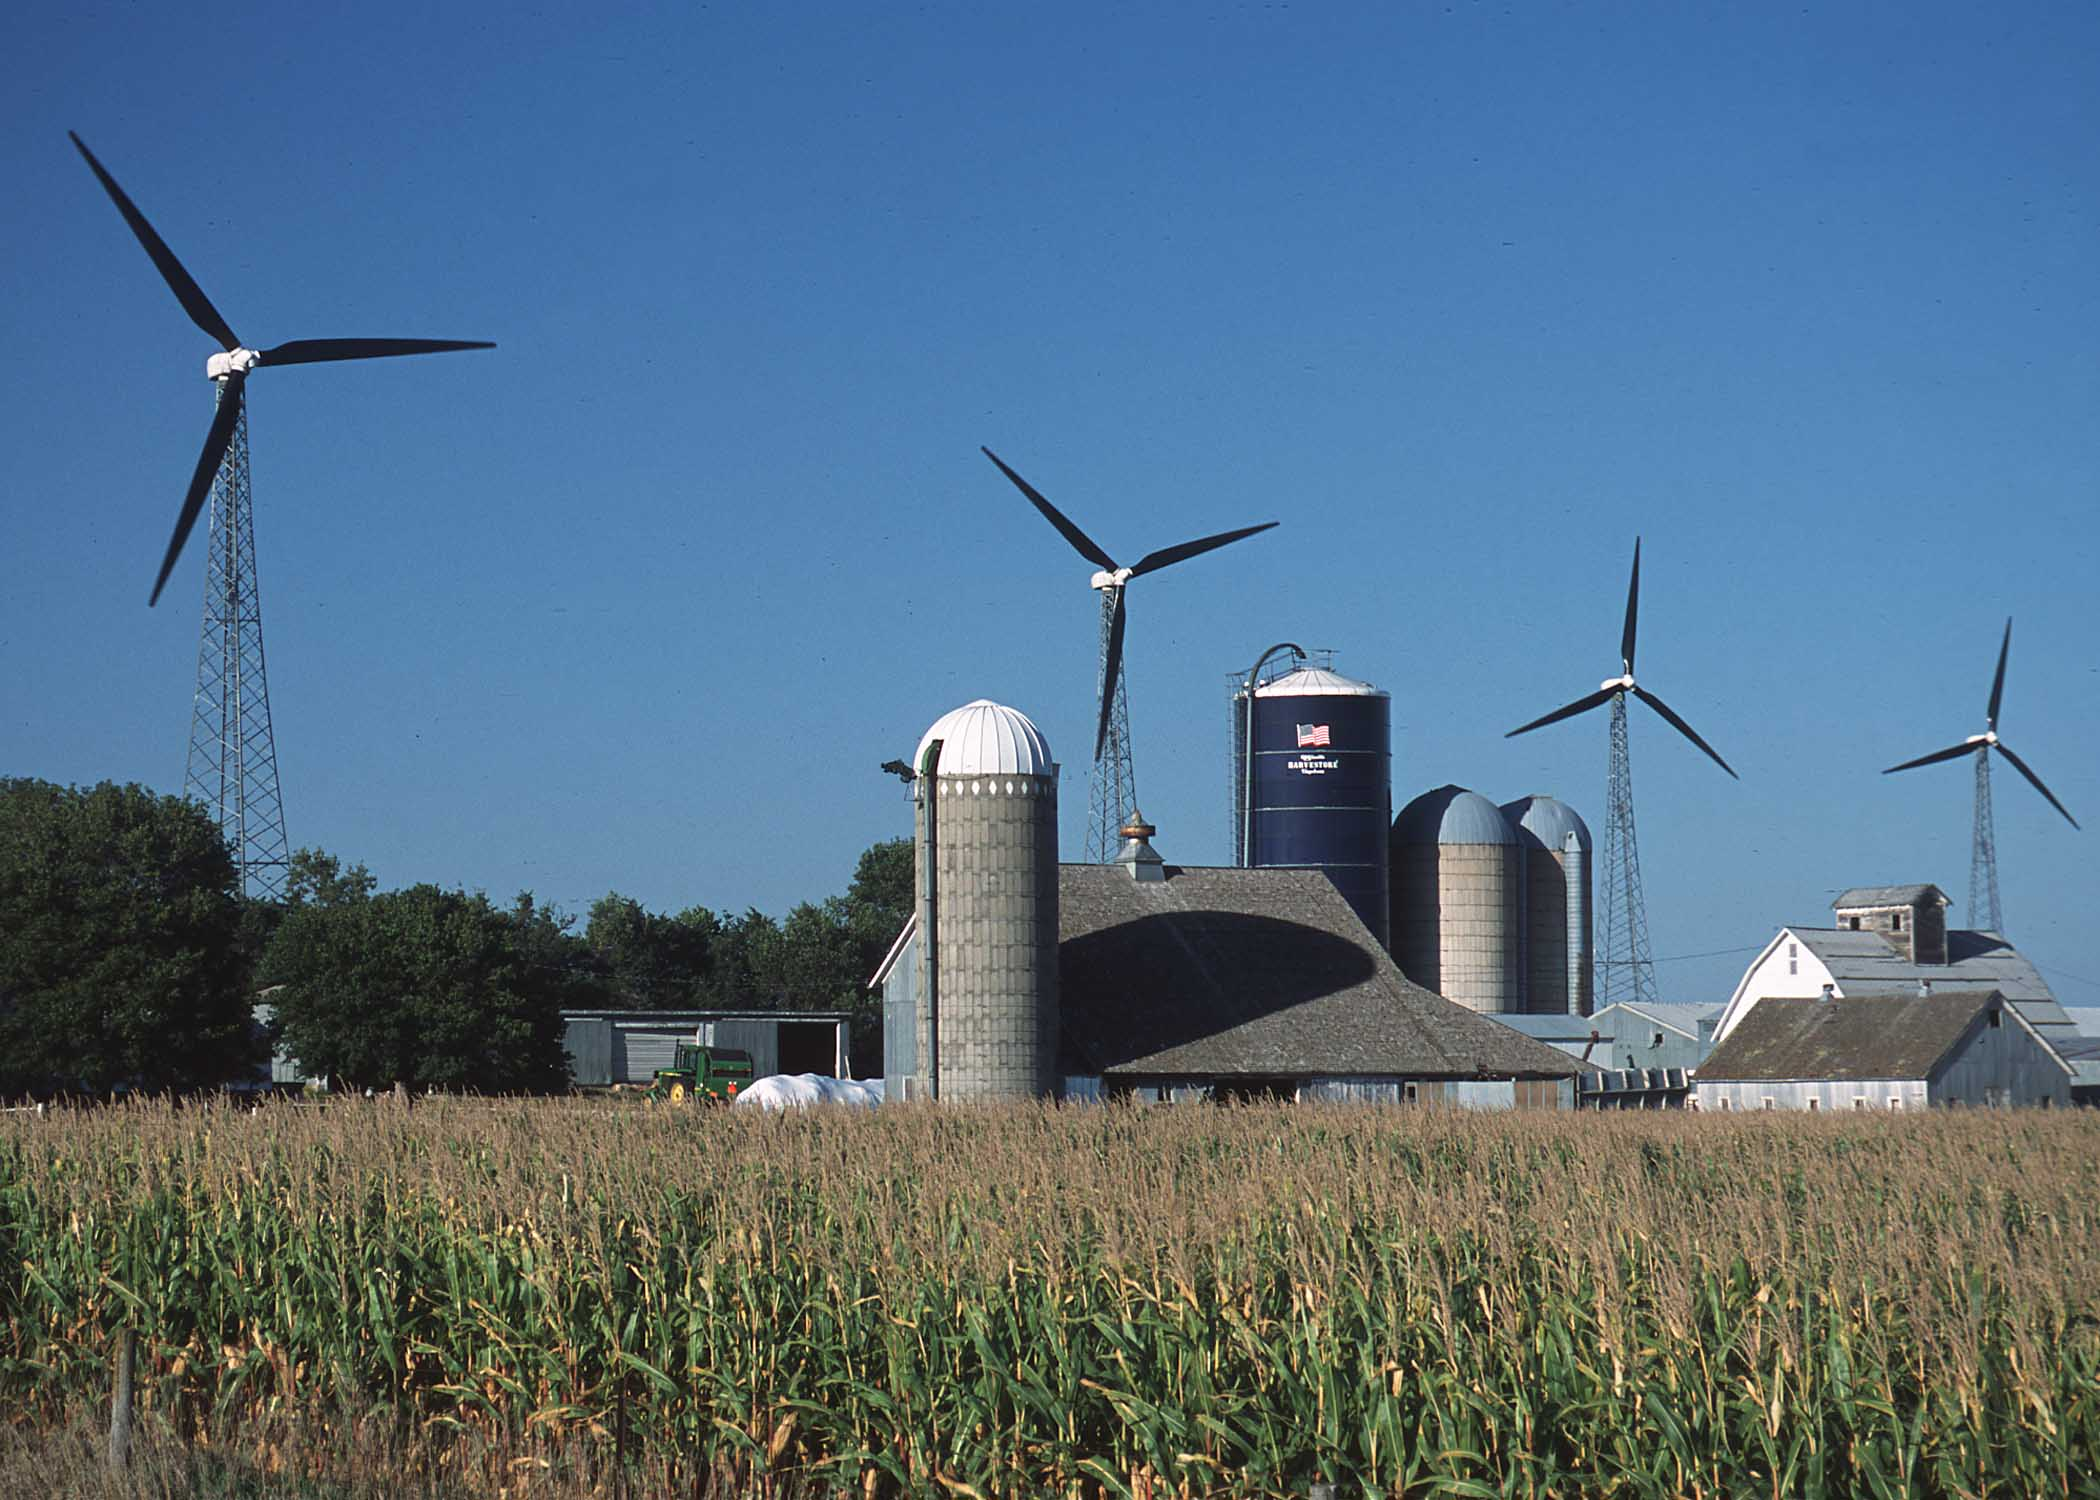 Picture of silo, green fields, with several modern wind generators in background, blue sky.